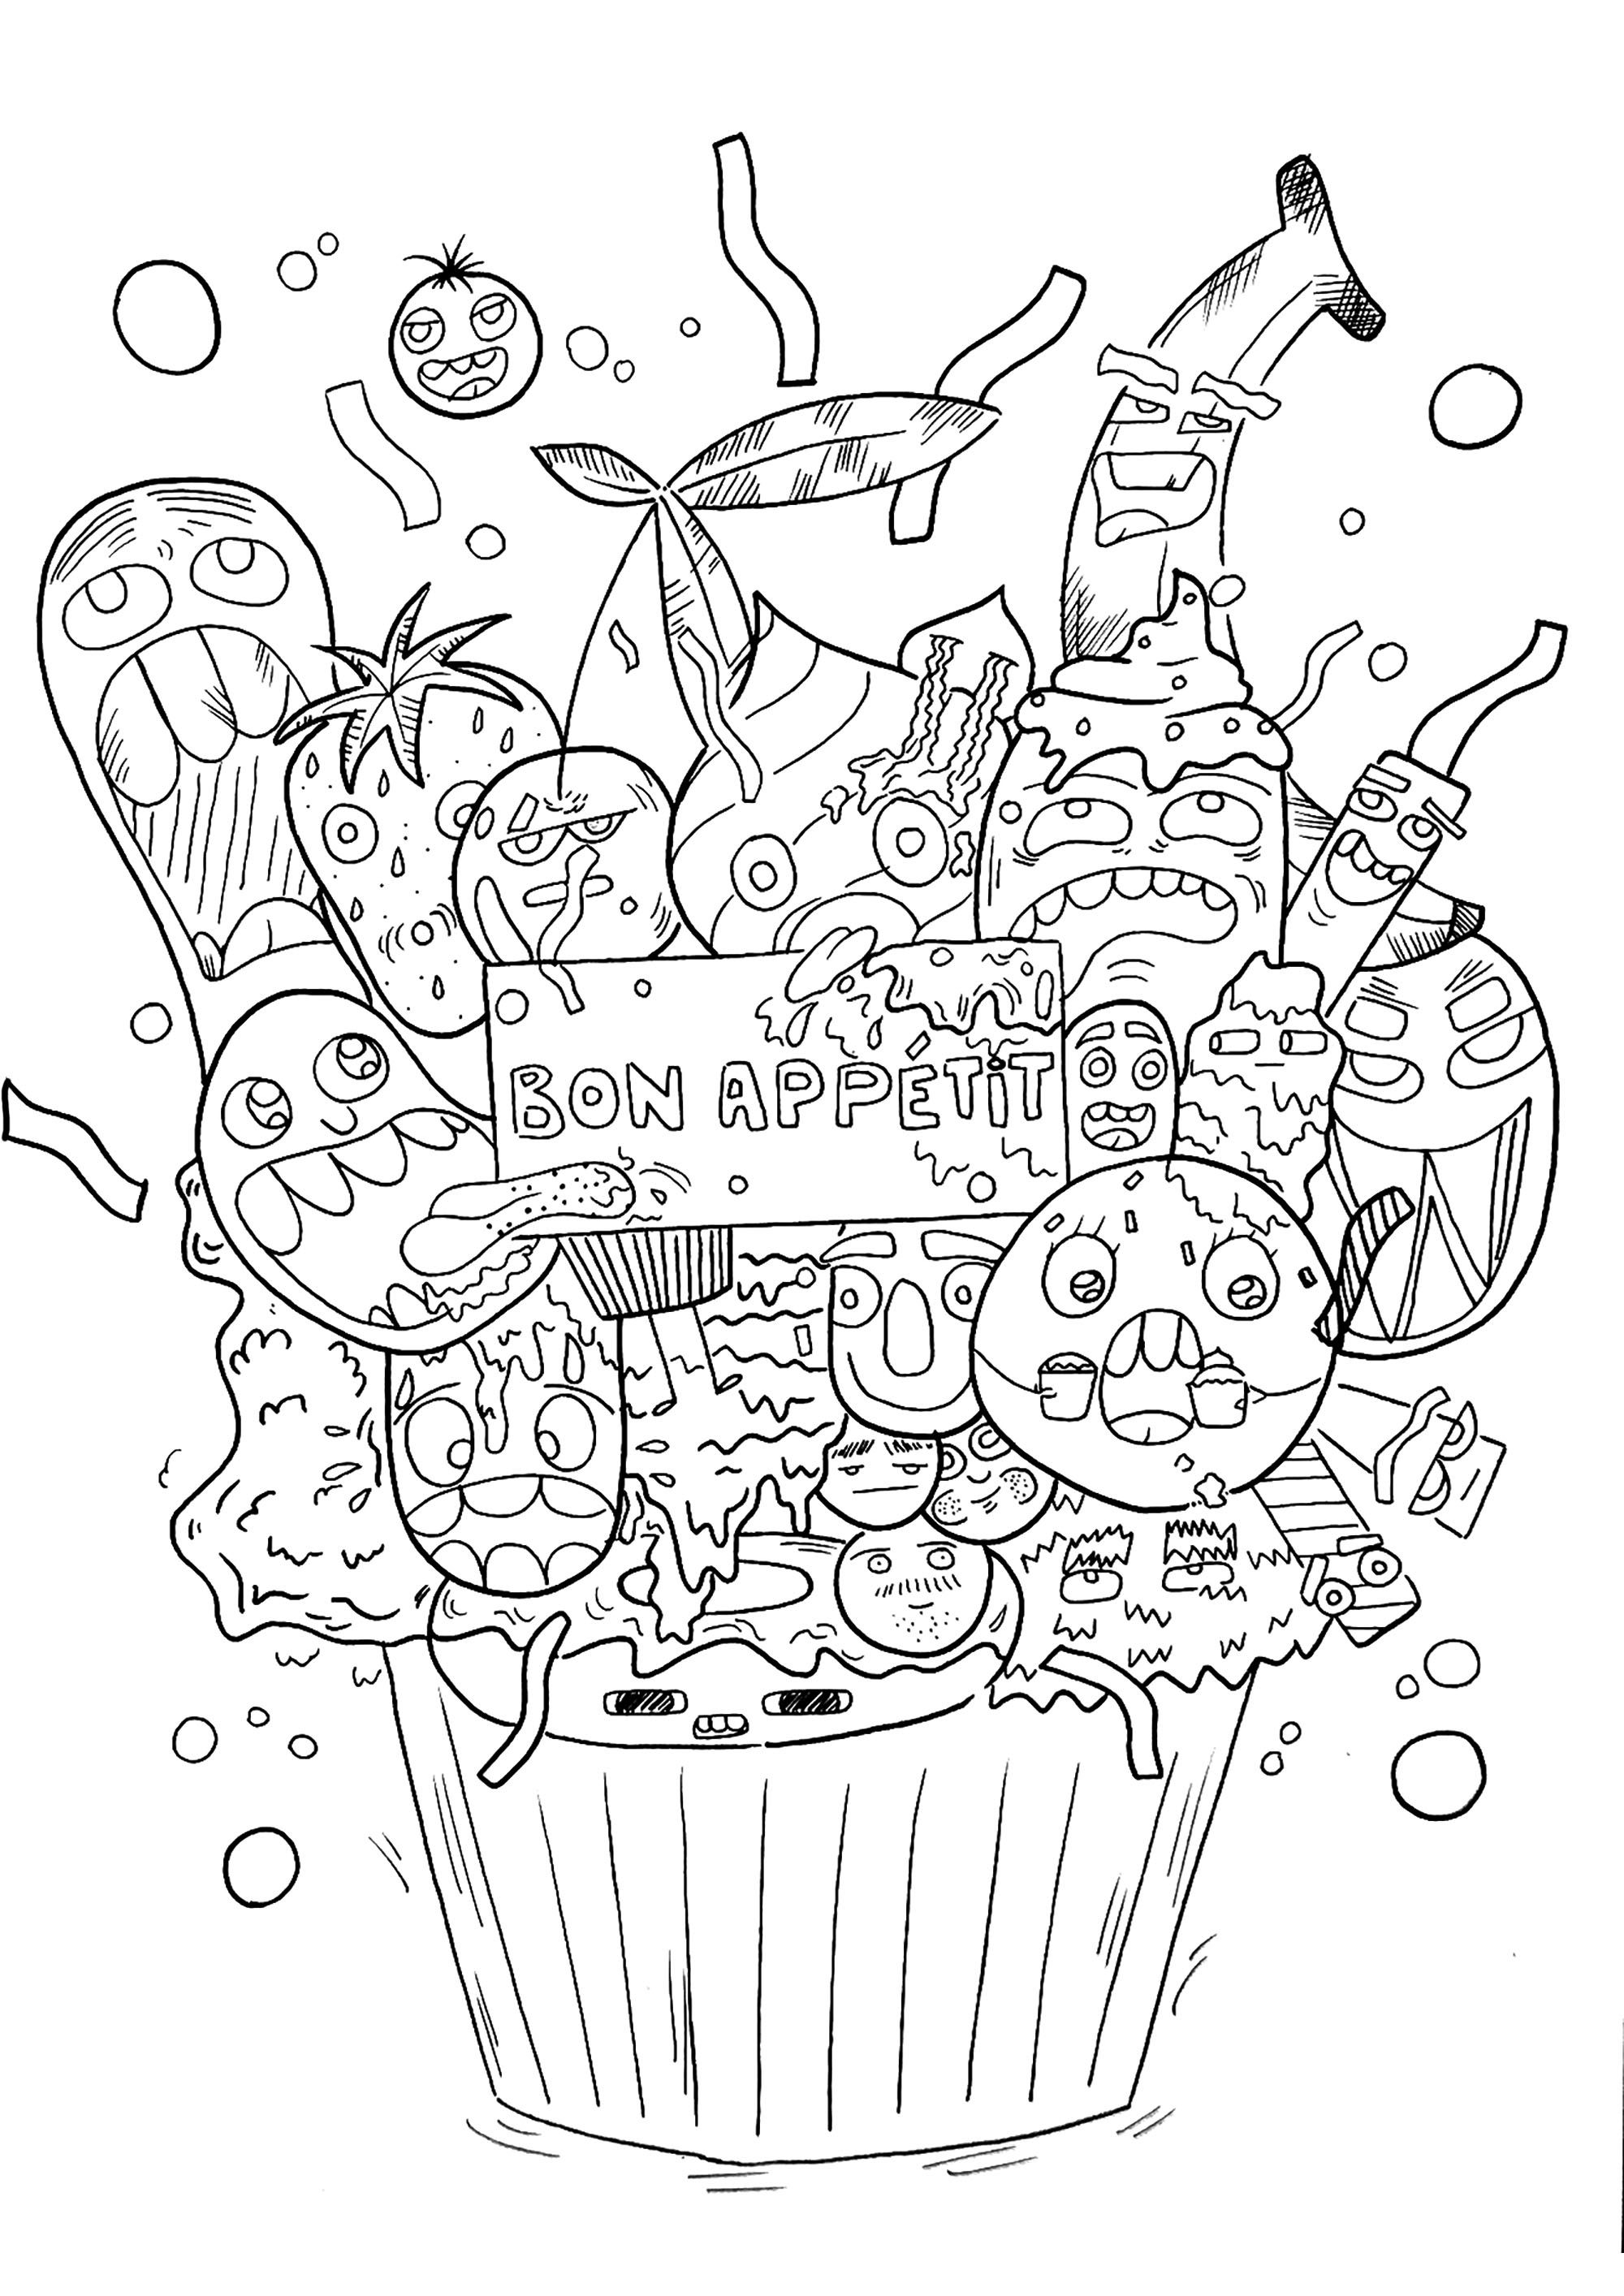 This Huge Cupcake With A Doodle Icing Is Going To Be Your Favorite Color Dessert From The Gallery Fairy Coloring Book Coloring Pages Dinosaur Coloring Pages